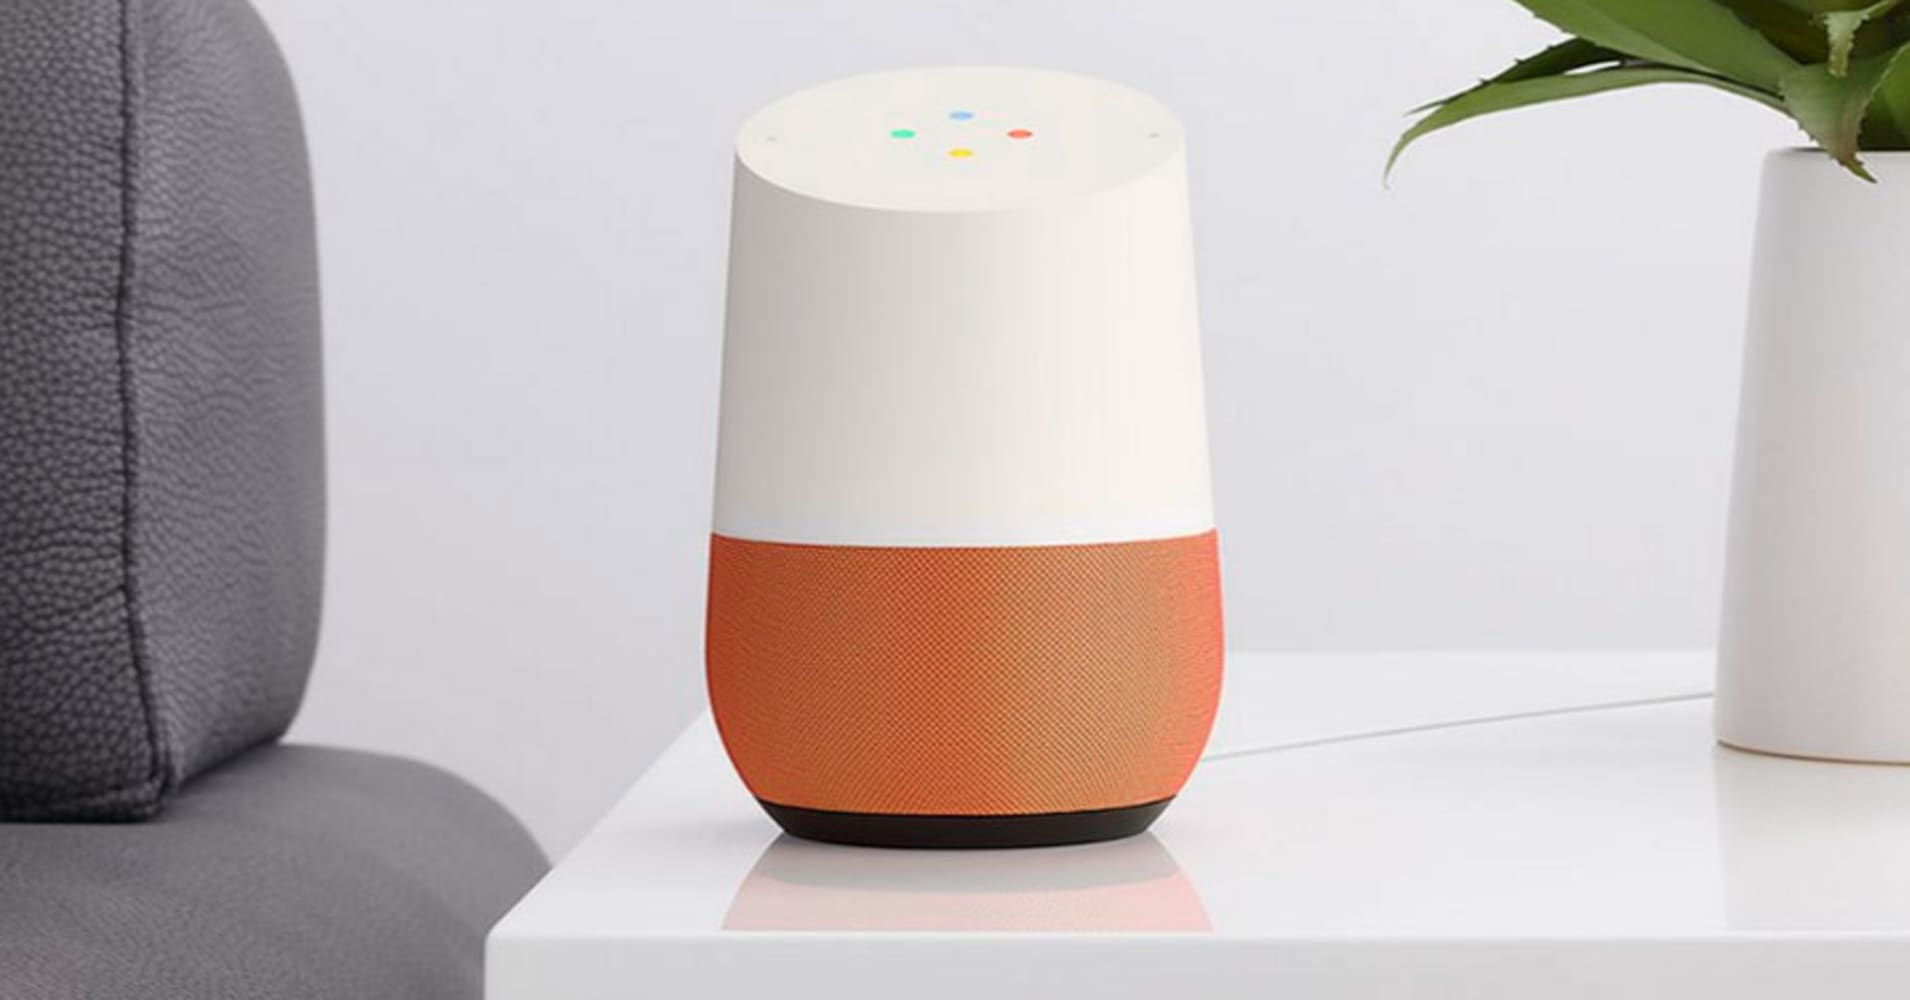 Google Home is about to offer a feature Amazon's Alexa can't match